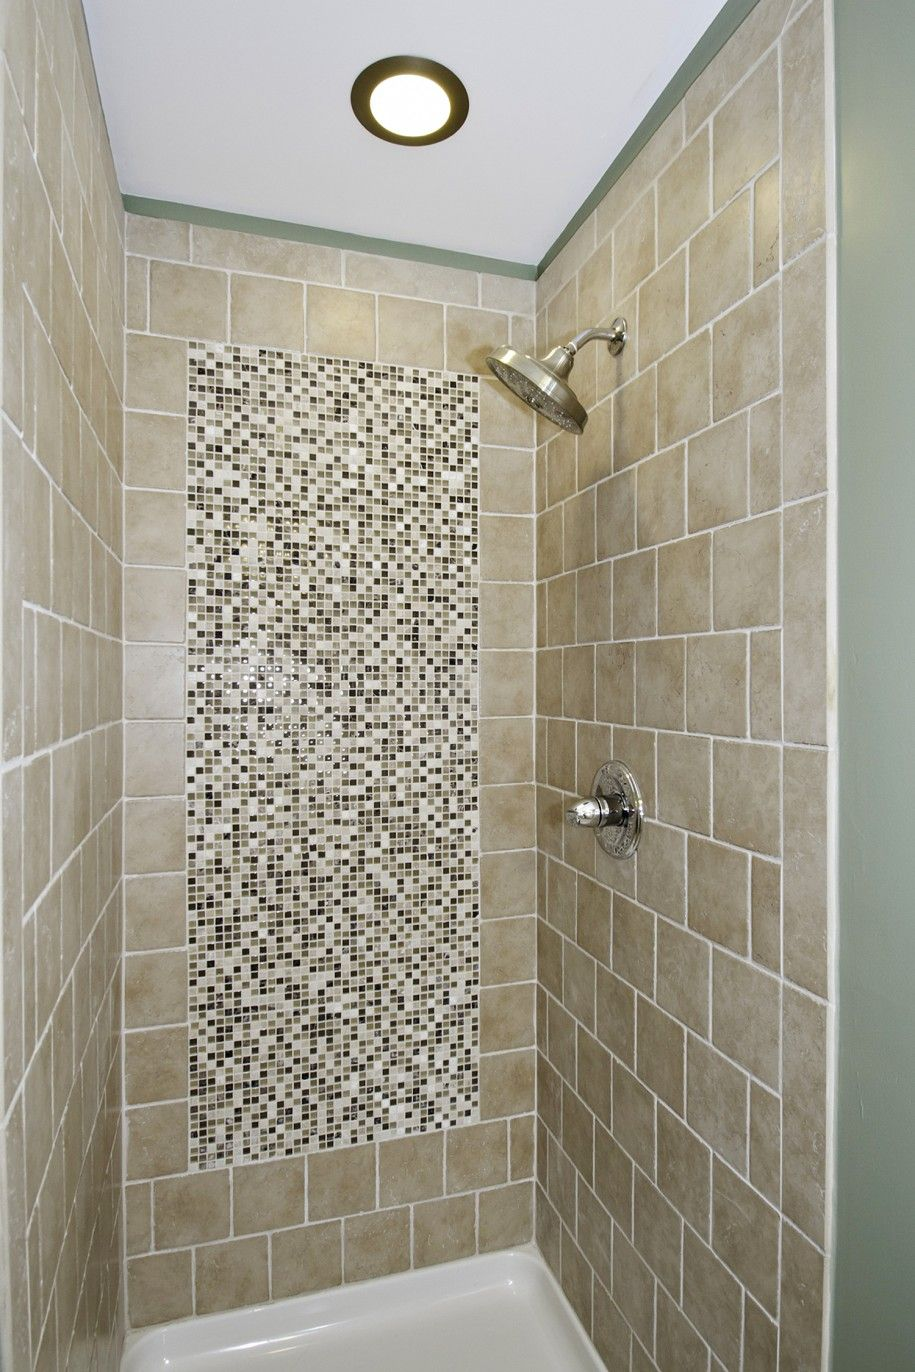 Splendid Image Of Bathroom Decoration Using Stand Up Shower Ideas Fantastic Small Bathroom Design And